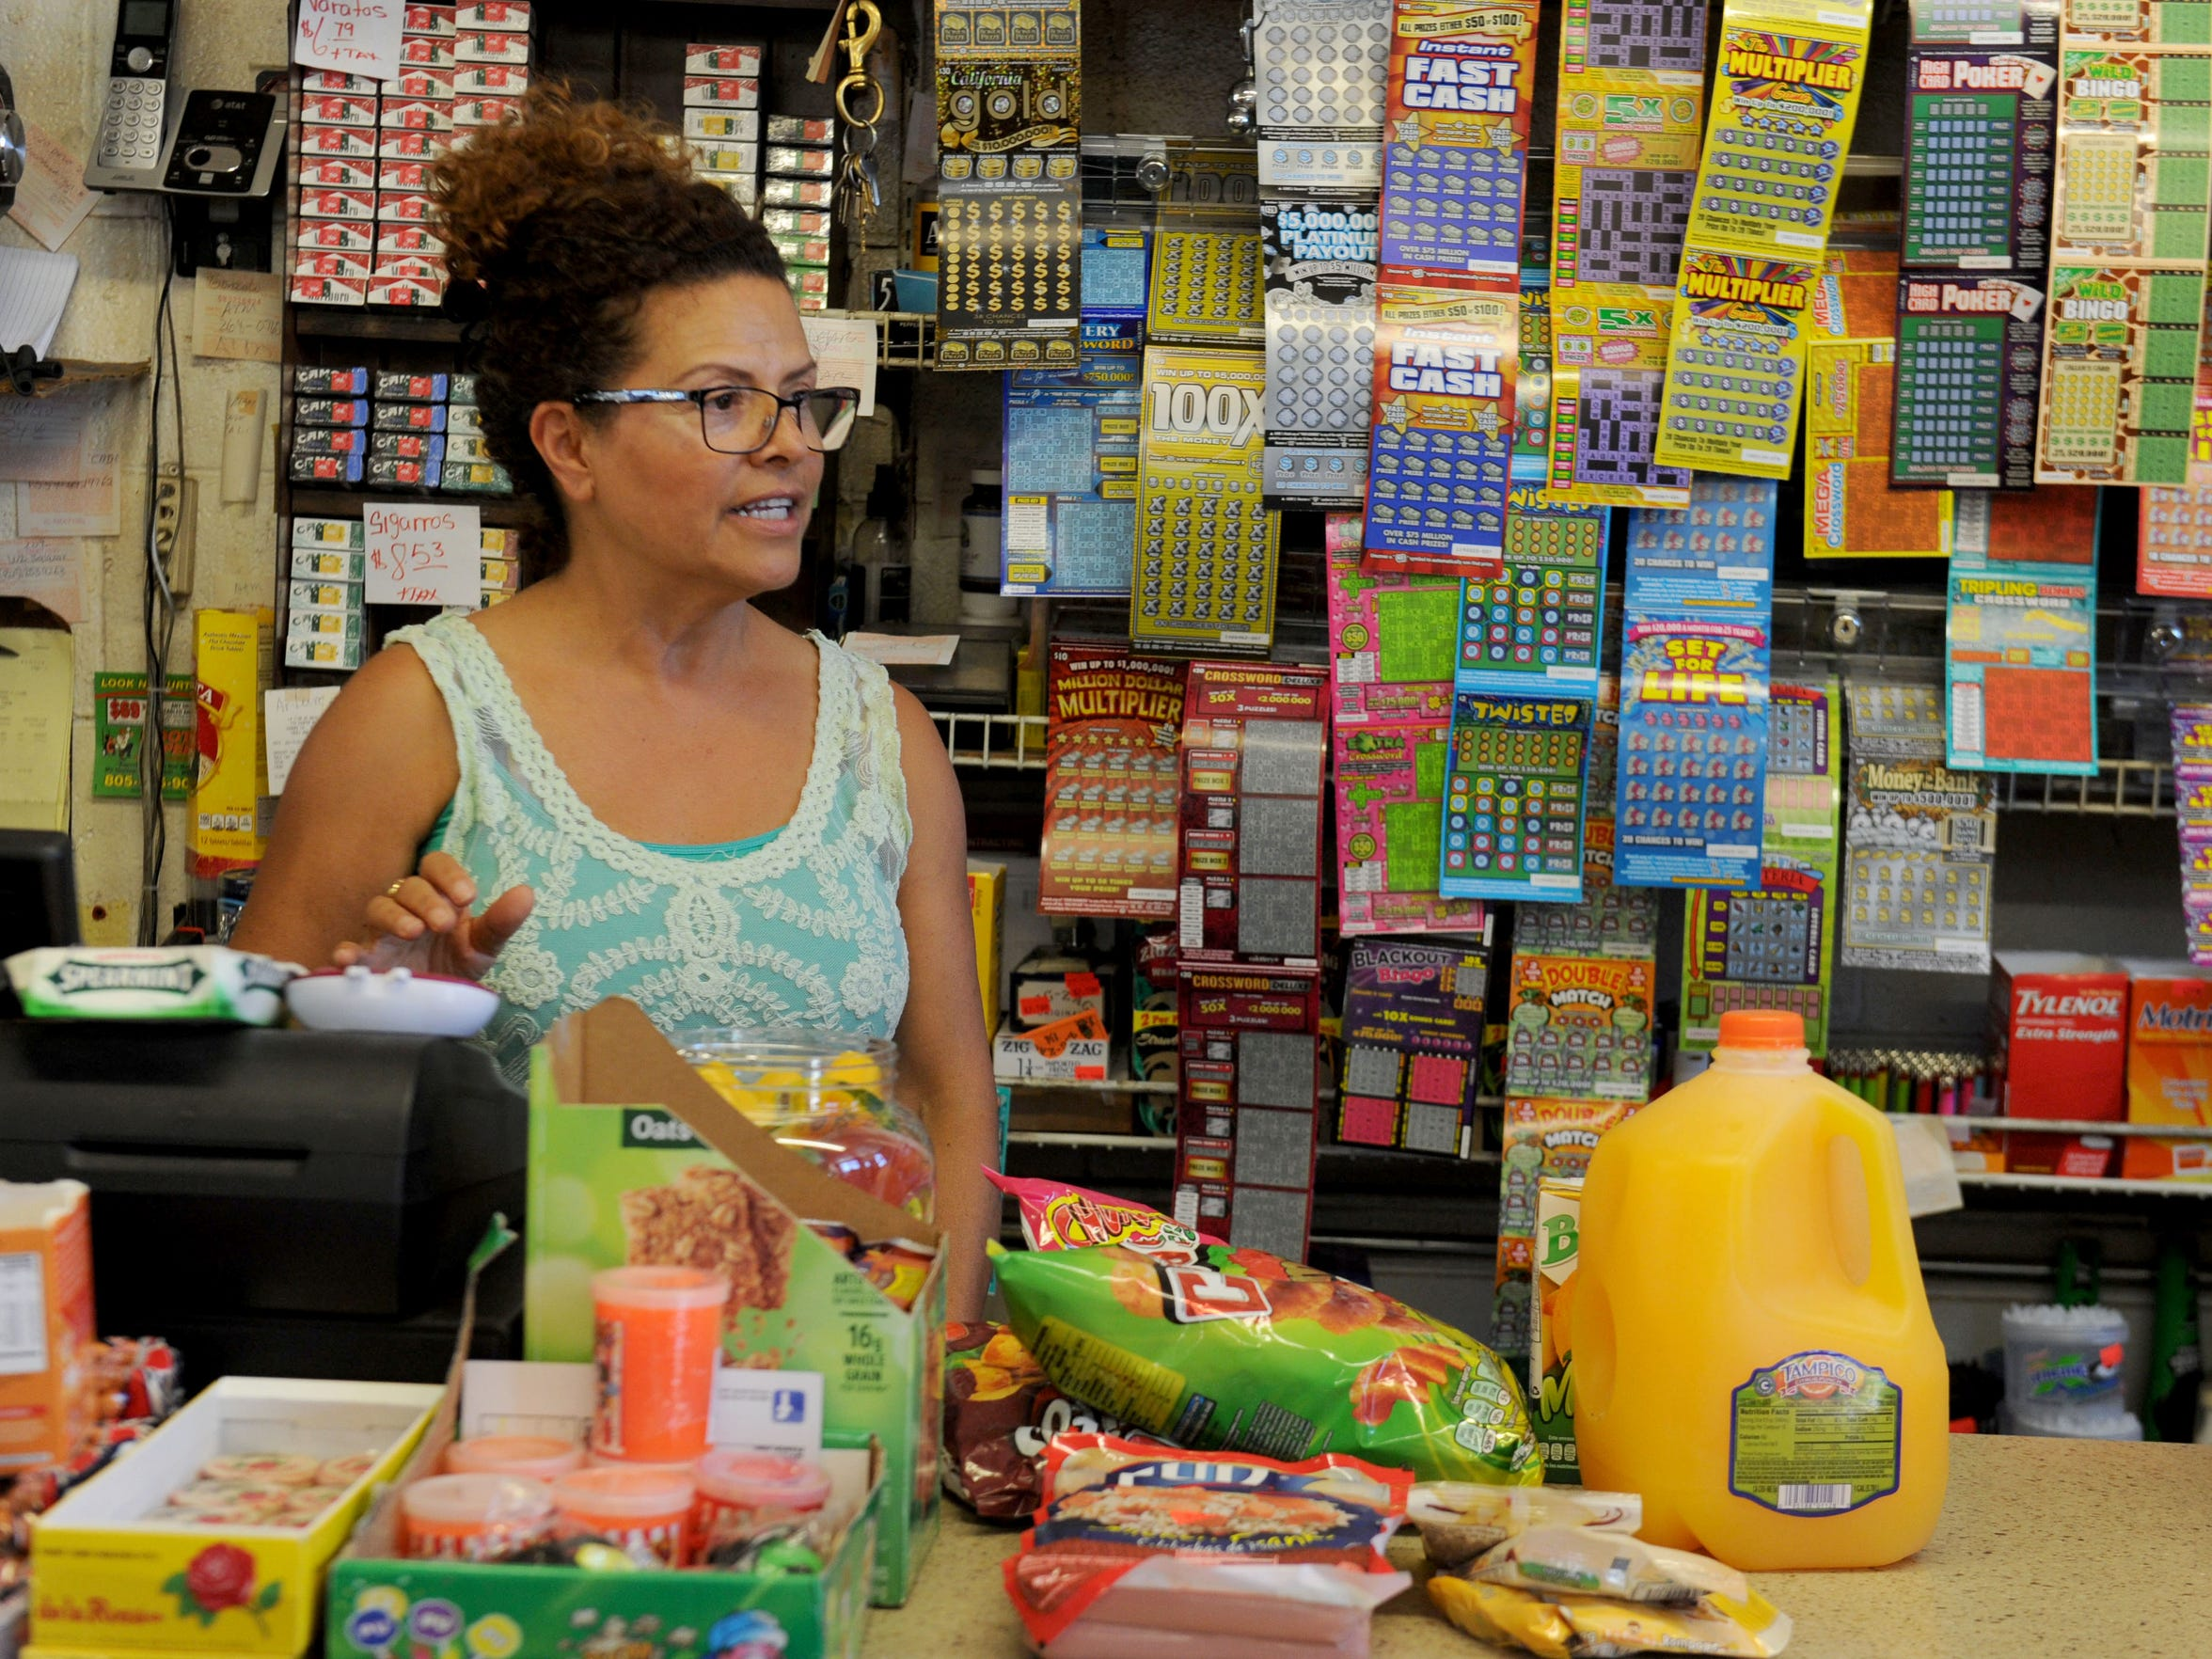 Alicia Estrada, co-owner of La Flor De Mayo, starts ringing up items for a customer. Her family has owned the small market and restaurant in Oxnard's La Colonia neighborhood for about 30 years. Estrada said many things have changed in the since the Colonia Chiques gang injunction was implemented nearly a decade ago.